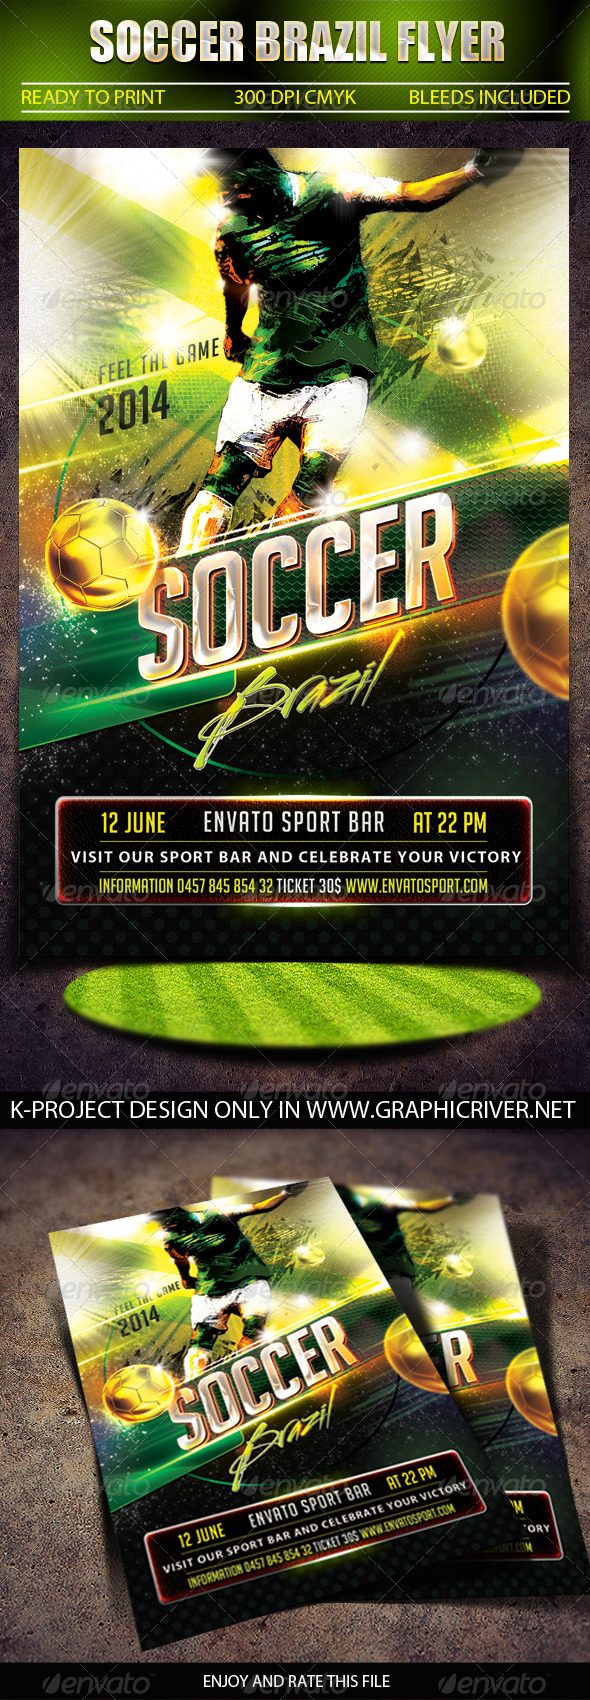 GraphicRiver Soccer Brazil Flyer 7890606